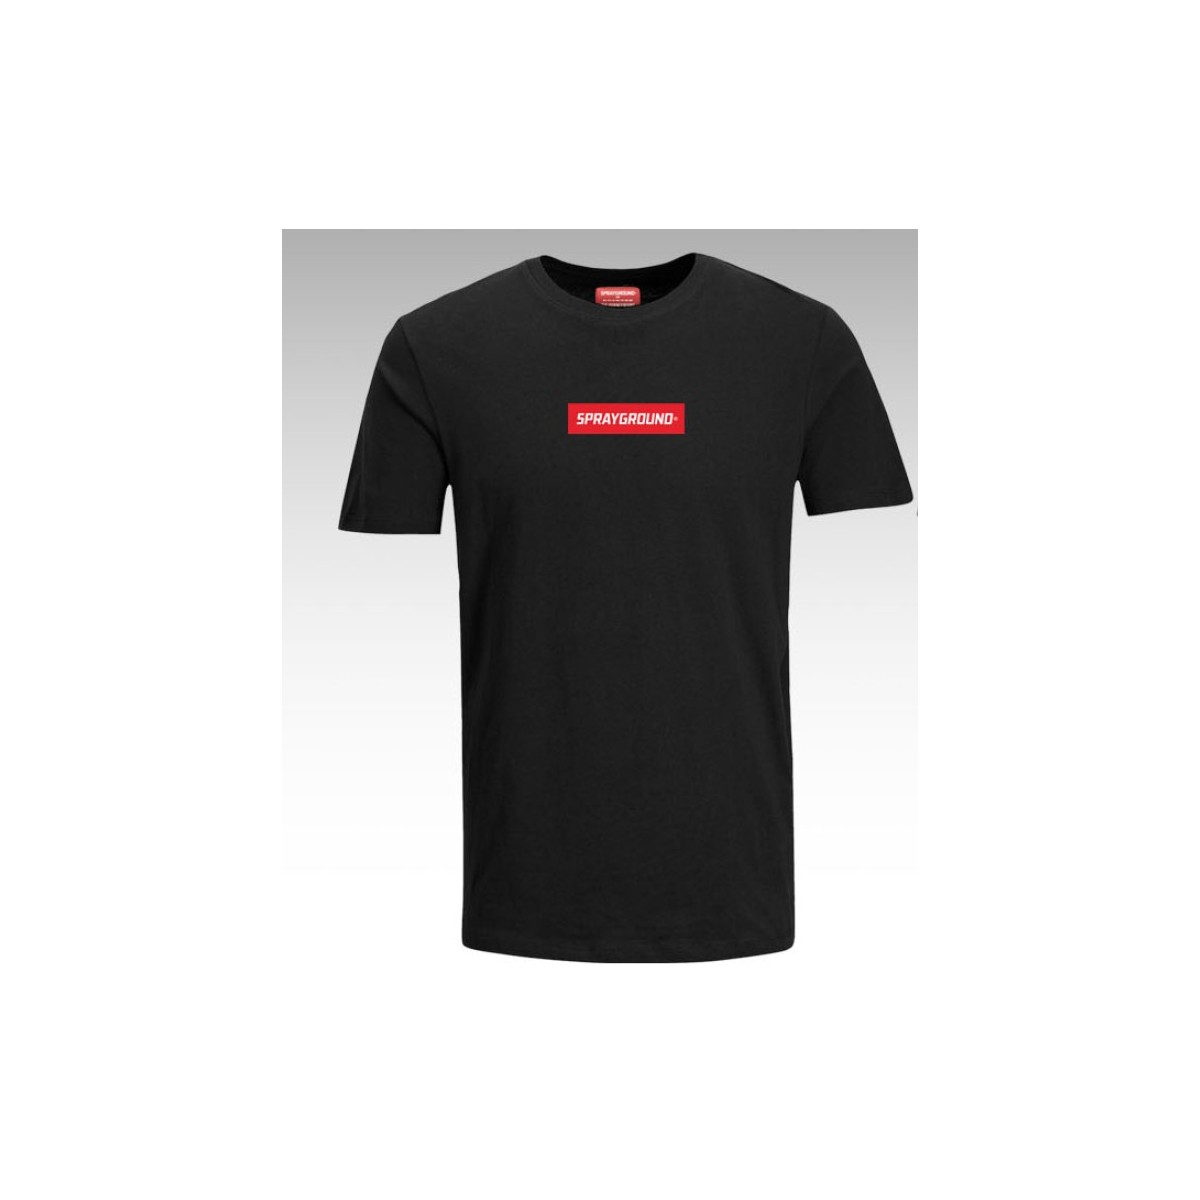 T-shirt - Double logo t-shirt